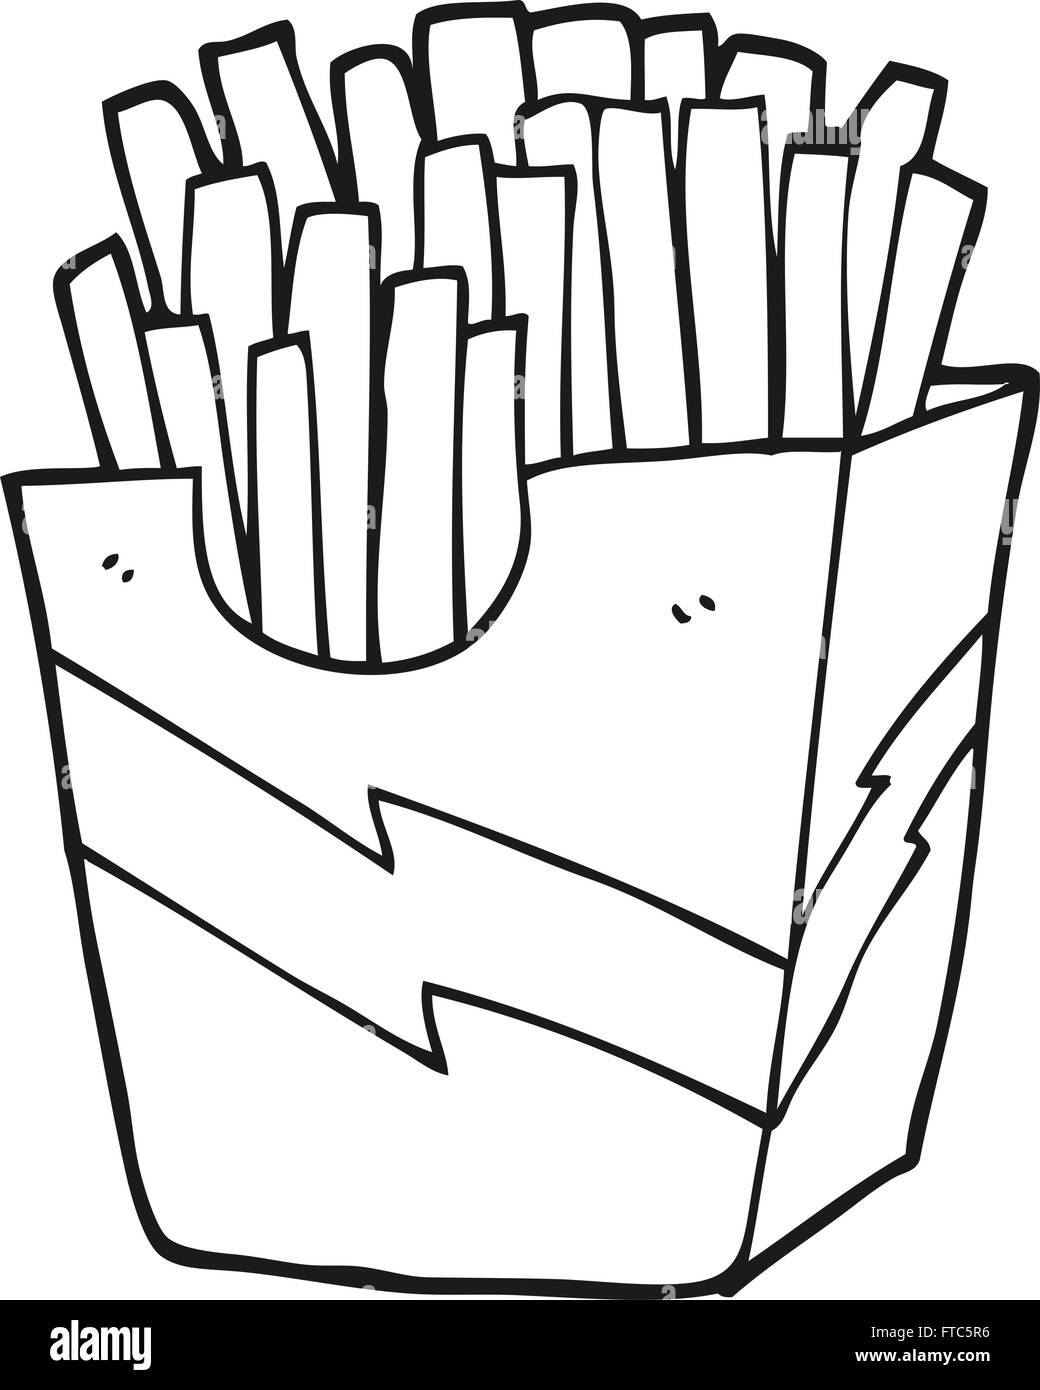 Freehand Drawn Black And White Cartoon French Fries Stock Vector Art